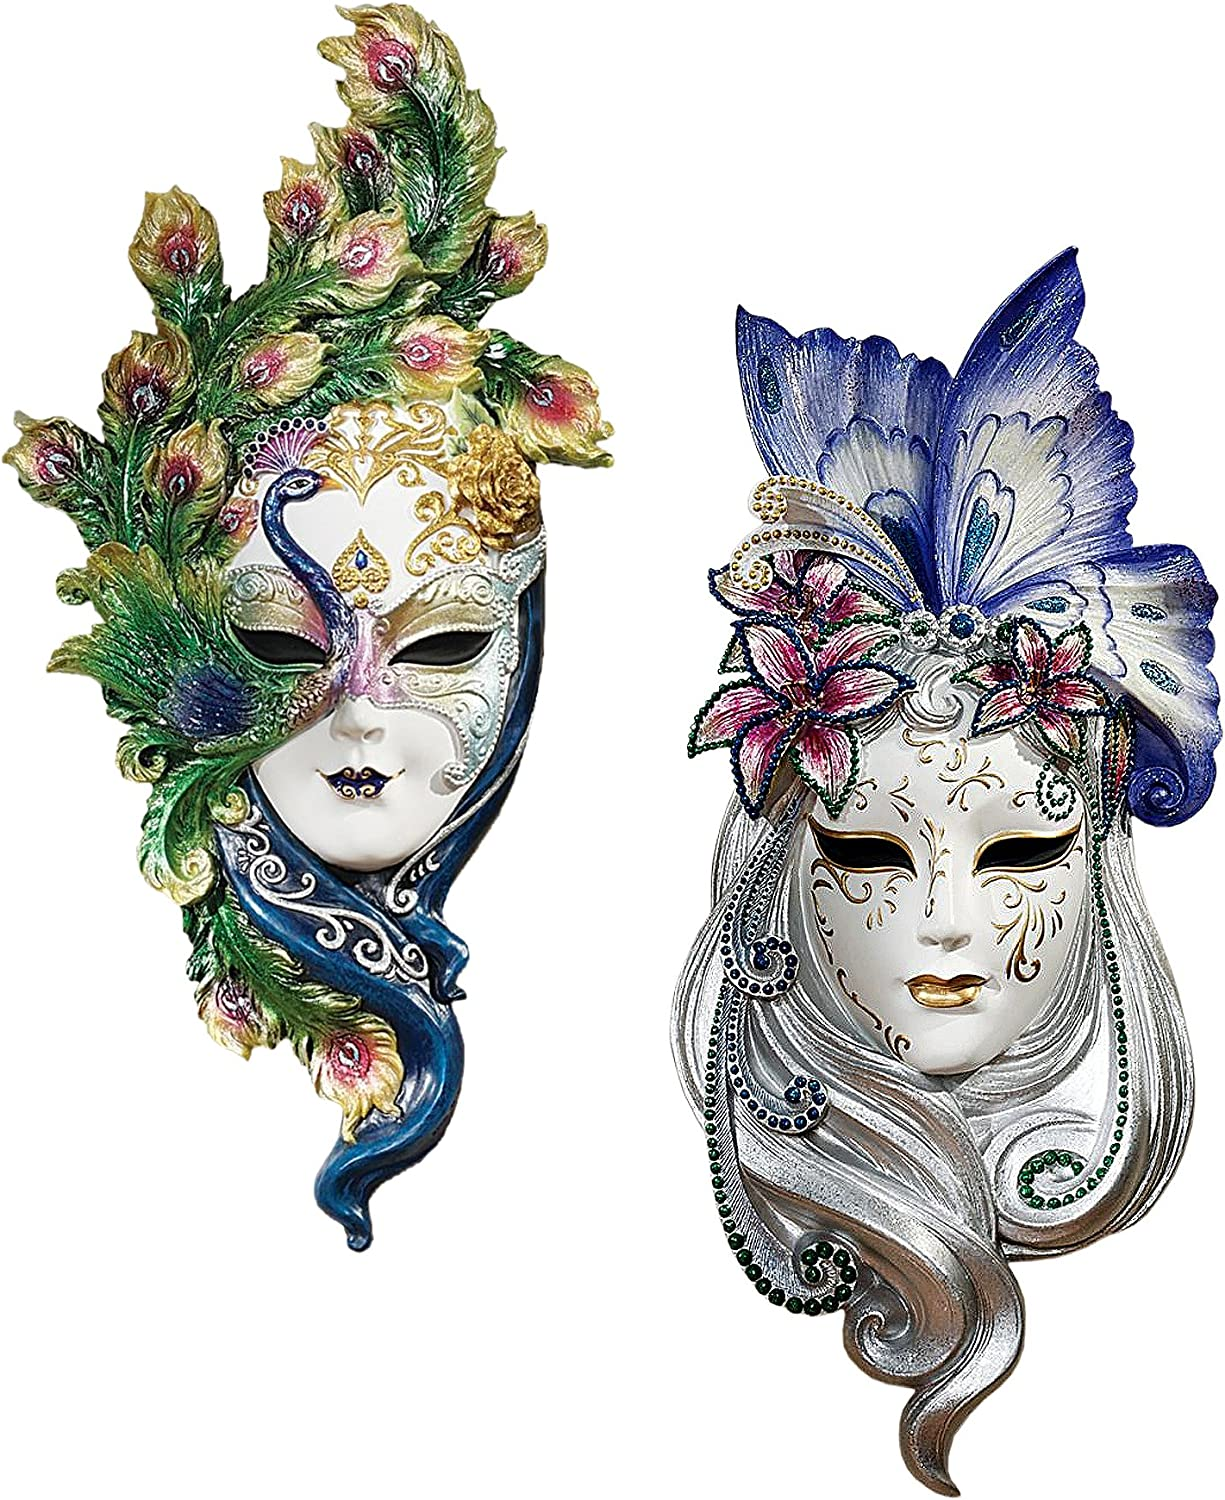 "Design Toscano Peacock Feathers and Butterfly Wings Masks of Venice Wall Sculptures Polyresin, Set of 2, 13"", Full Color"